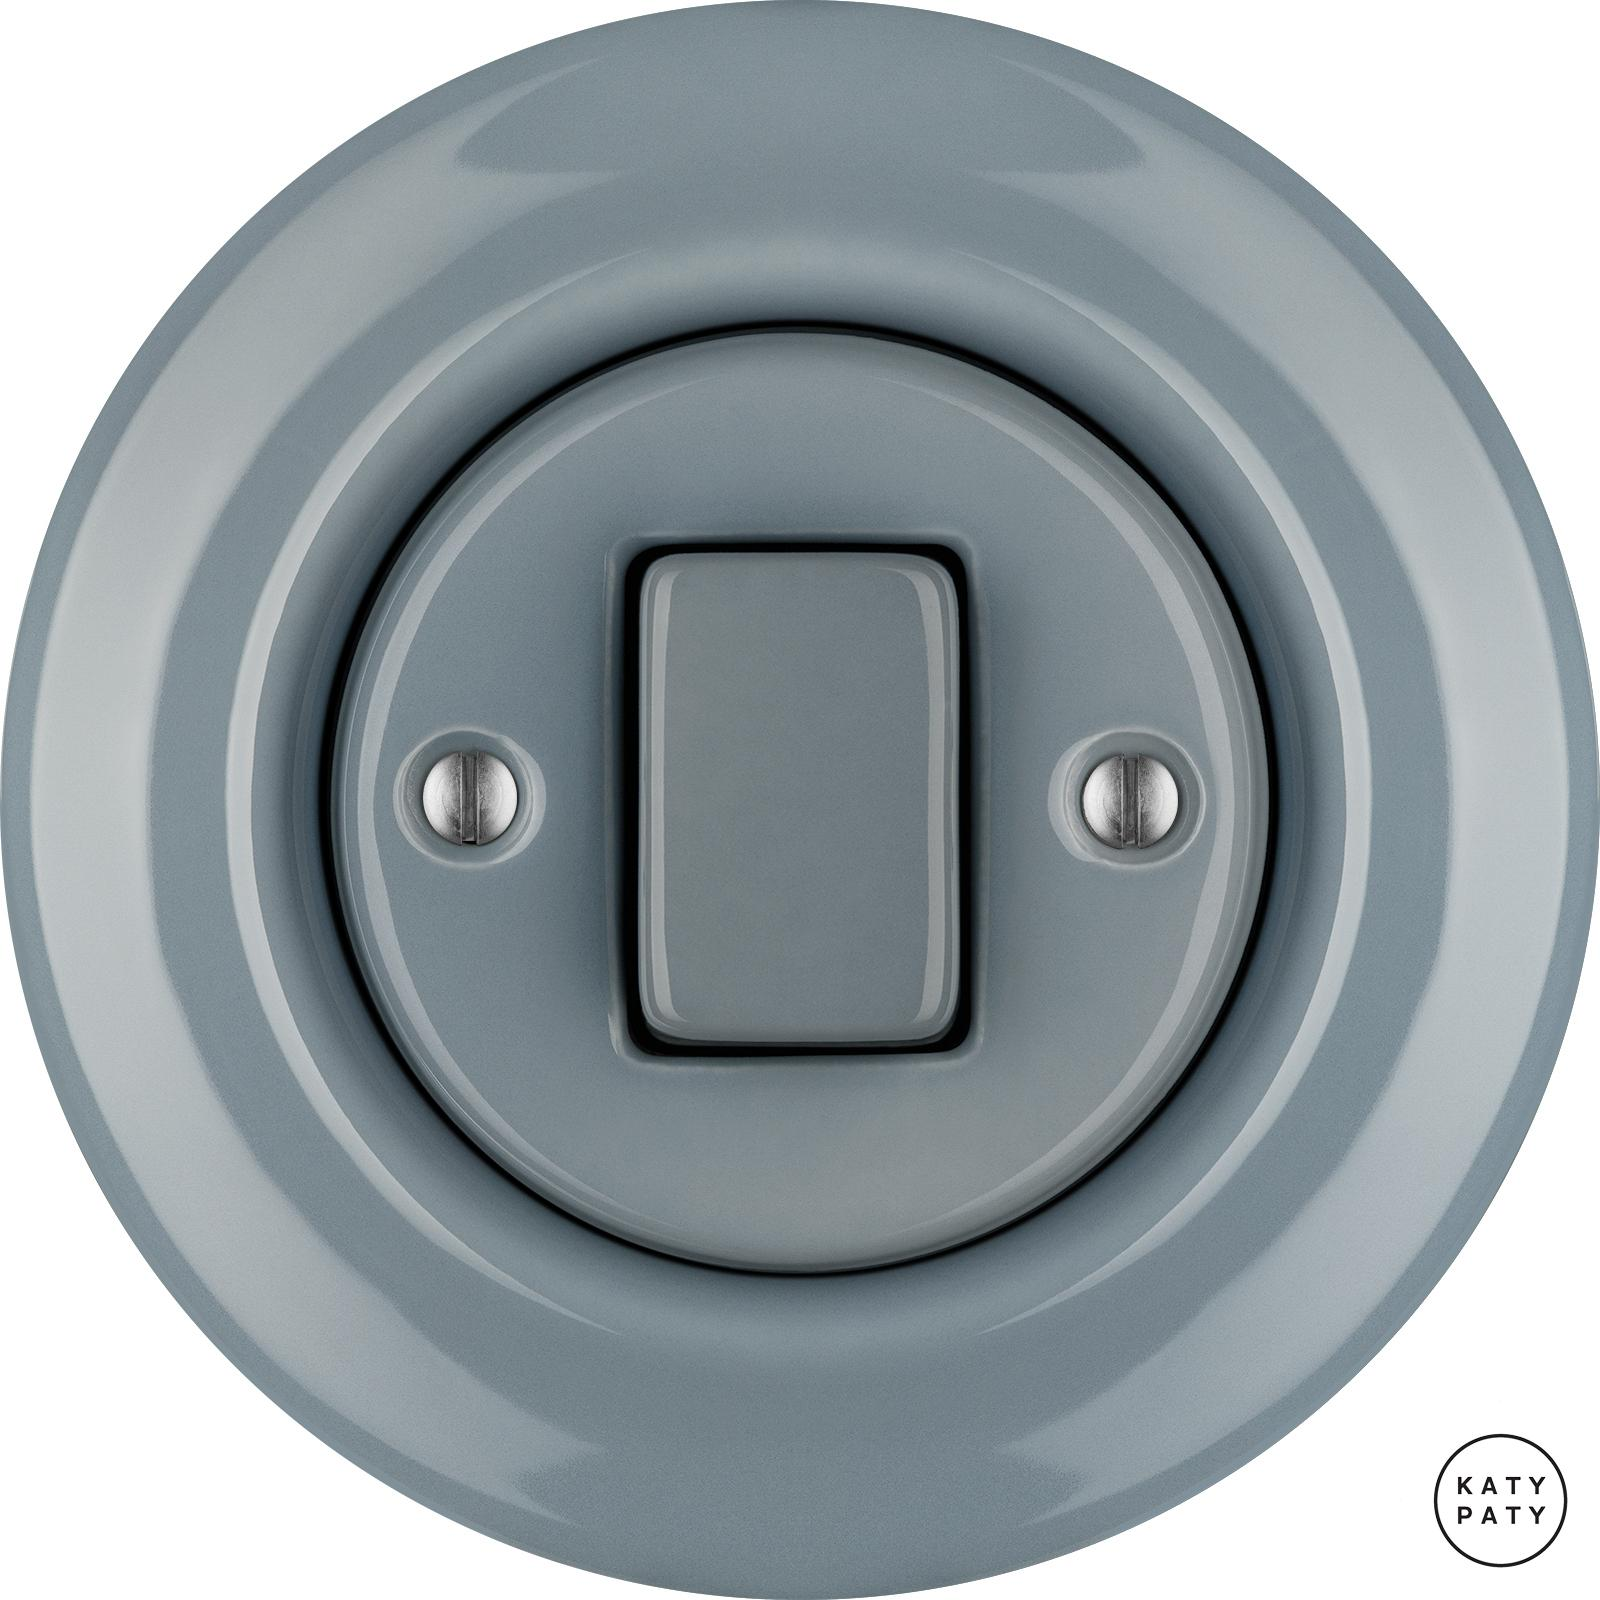 Katy Paty | Porcelain switches - a single key - FAT ()  - LIVOR